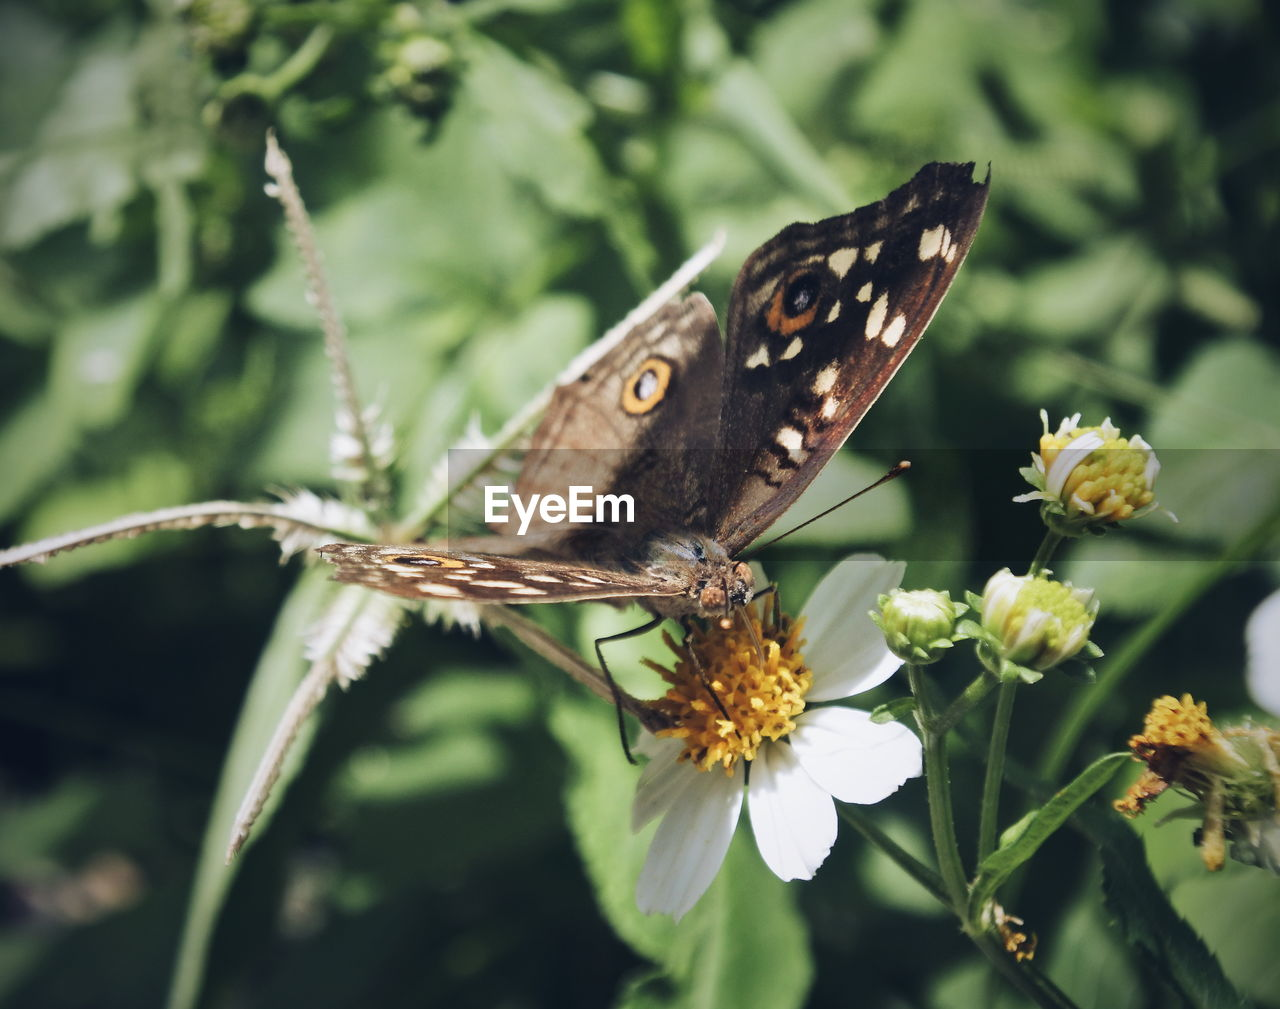 flower, animal wildlife, animal, animals in the wild, beauty in nature, insect, flowering plant, invertebrate, one animal, plant, animal themes, animal wing, butterfly - insect, close-up, nature, vulnerability, fragility, freshness, no people, growth, flower head, pollination, butterfly